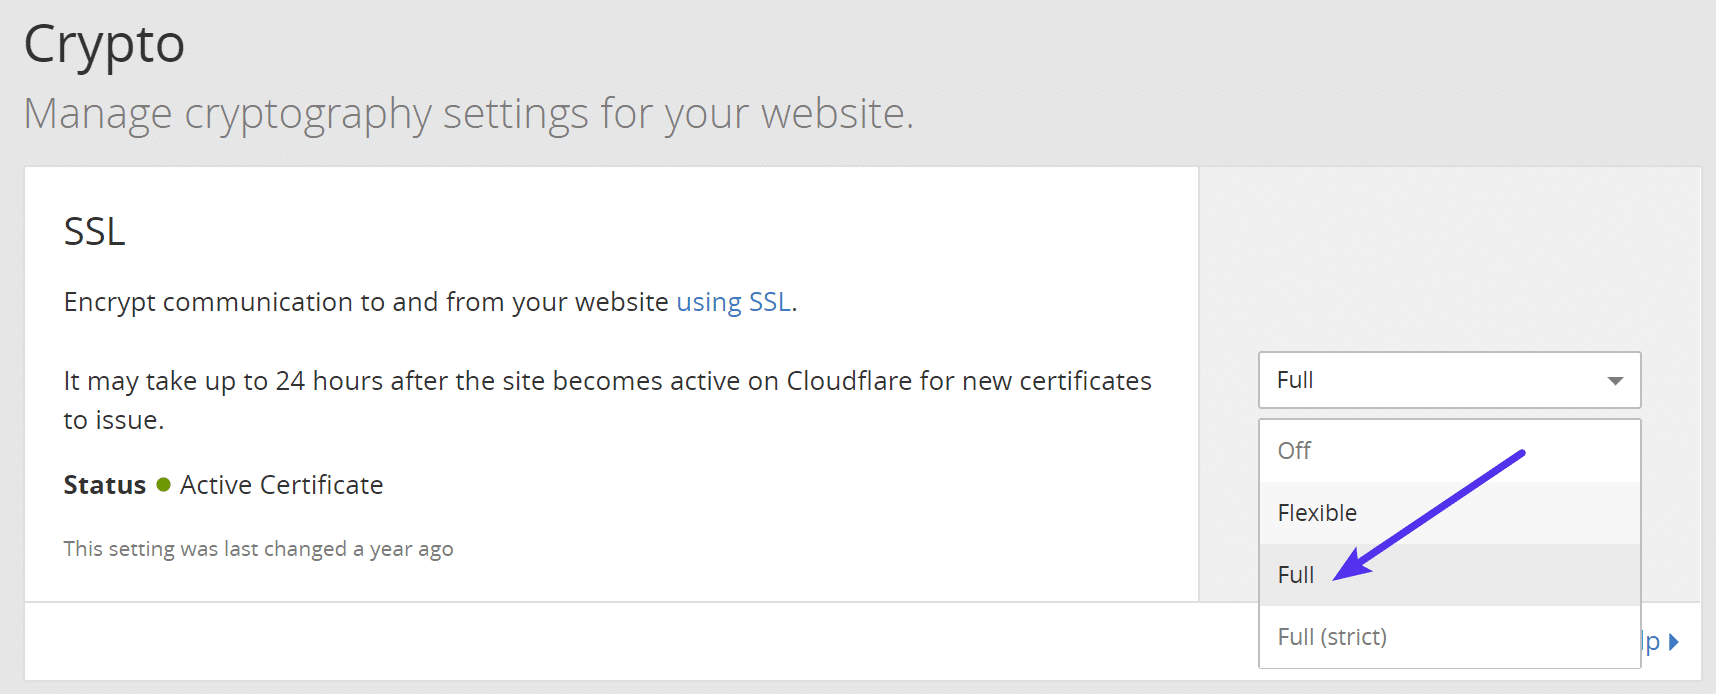 Set Cloudflare crypto level to full